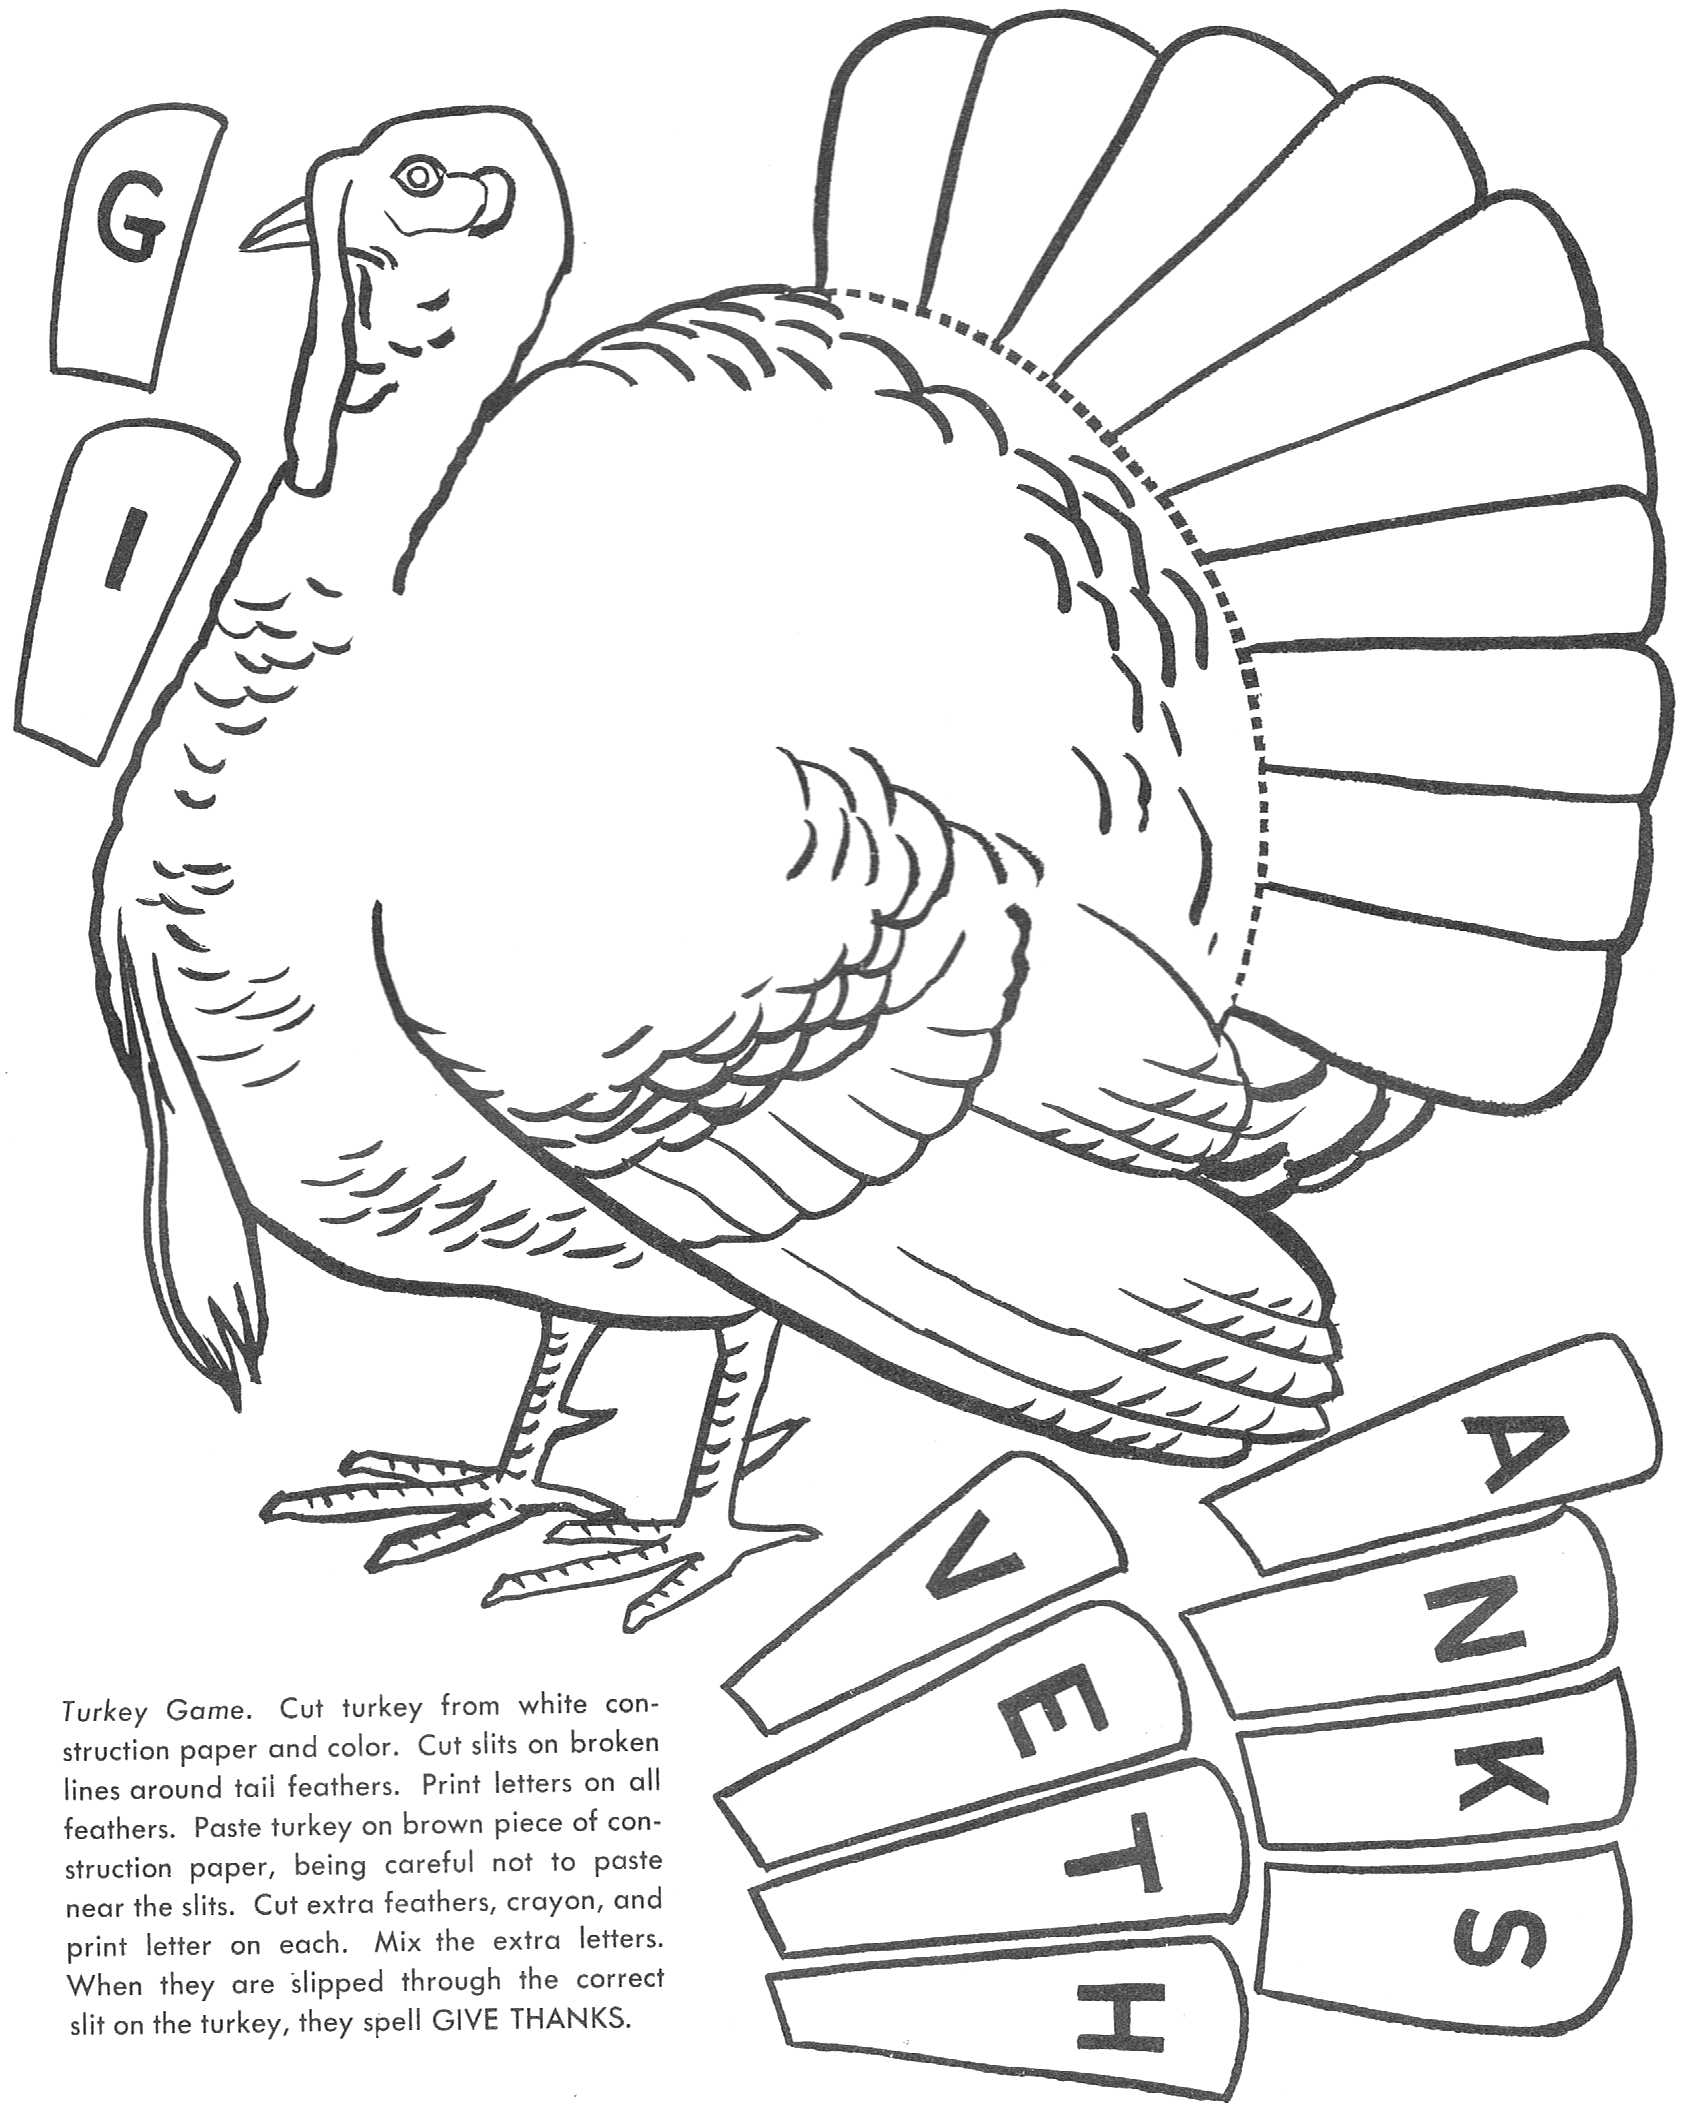 Uncategorized Turkey Printout free coloring turkey print out leave a reply cancel reply